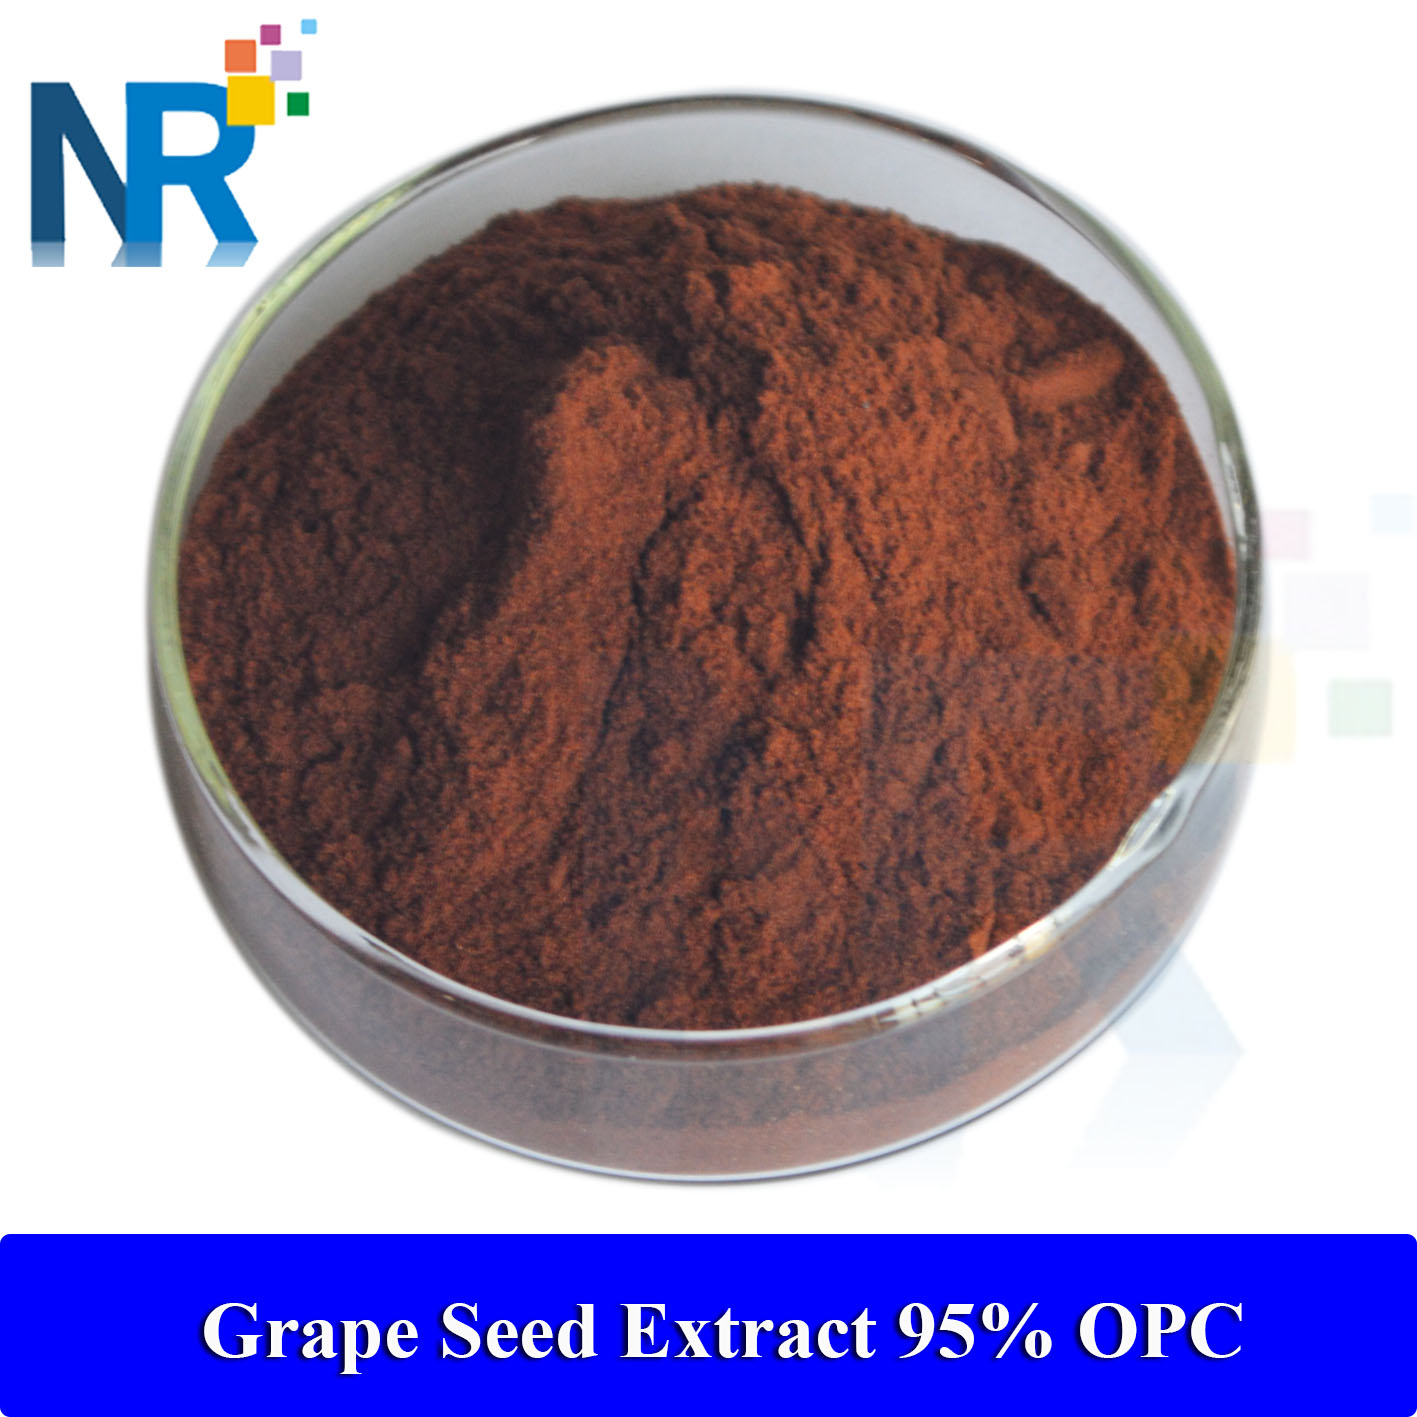 Grape seed extract 95%.jpg